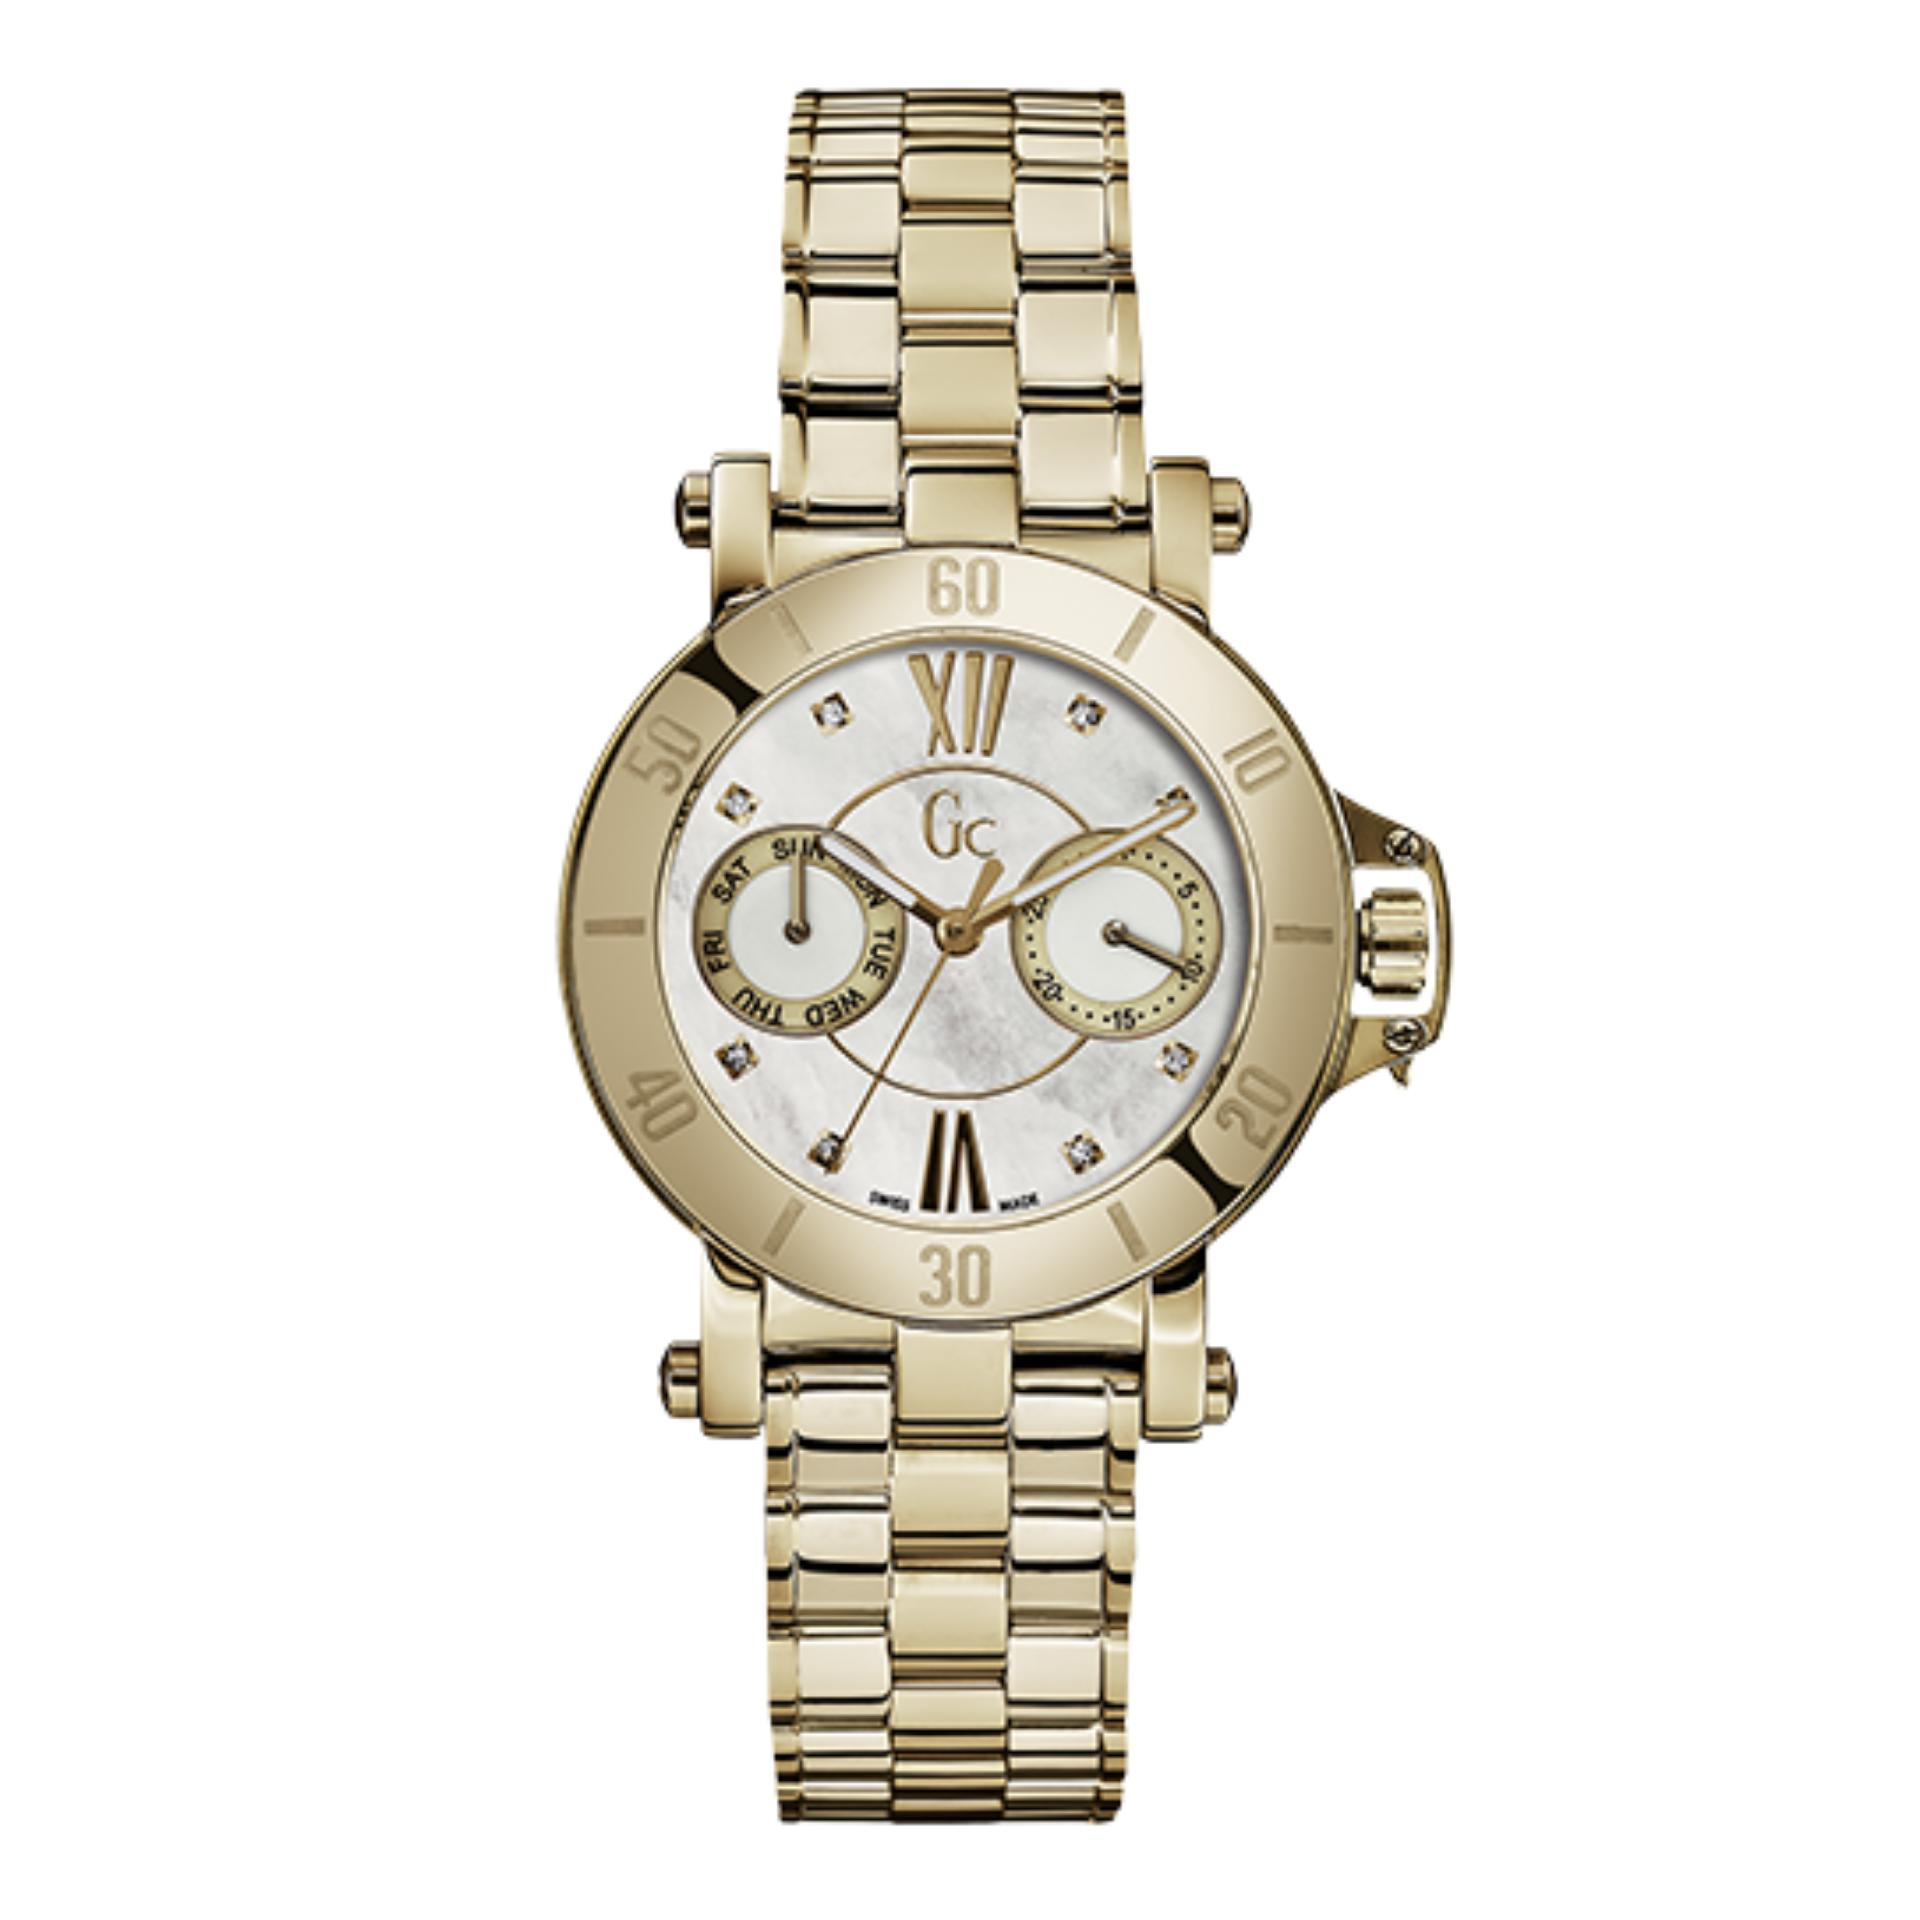 GUESS COLLECTION Gc FEMME X74111L1S - Jam Tangan Wanita - Stainless - Gold - White -